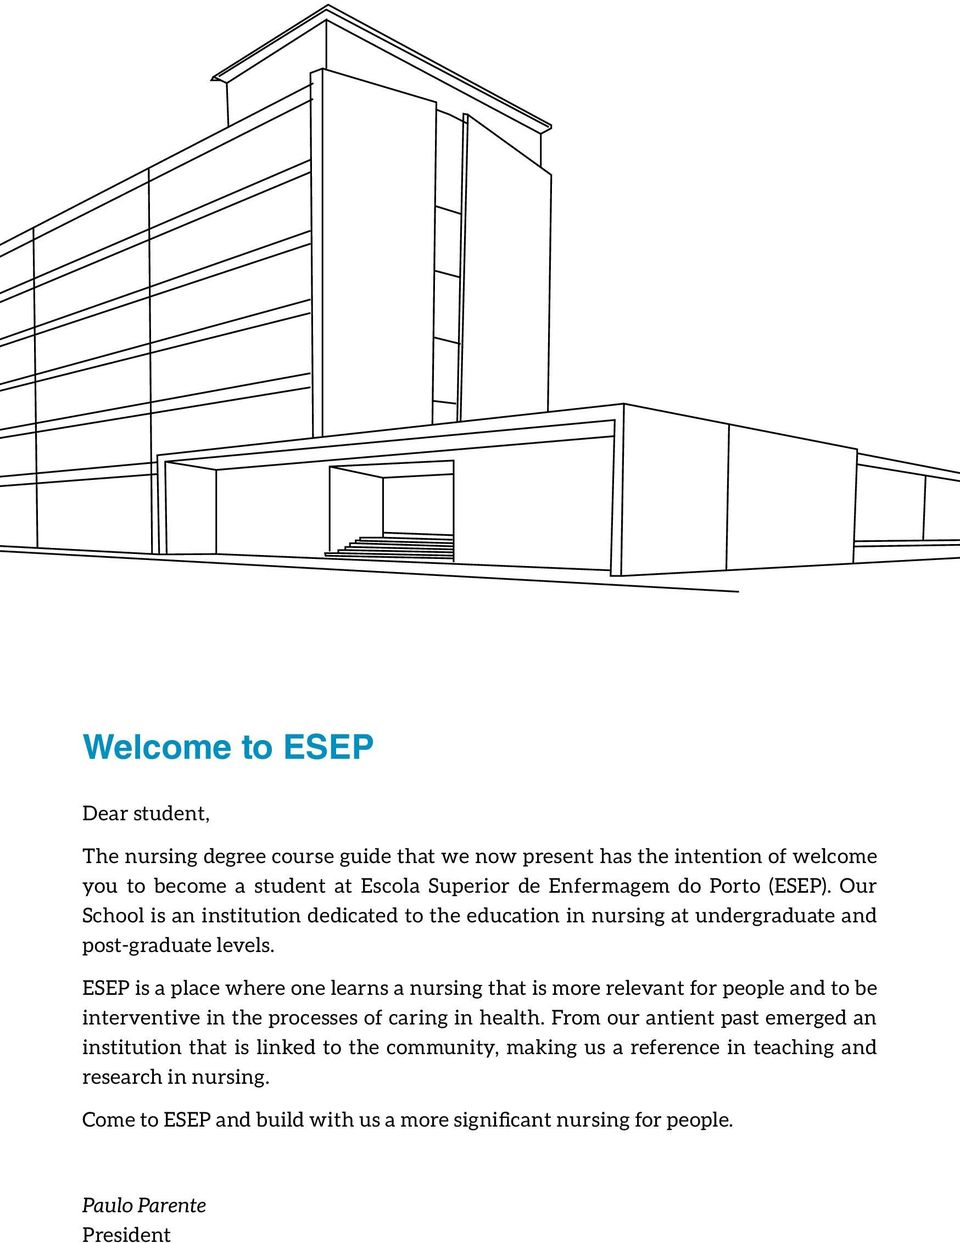 ESEP is a place where one learns a nursing that is more relevant for people and to be interventive in the processes of caring in health.